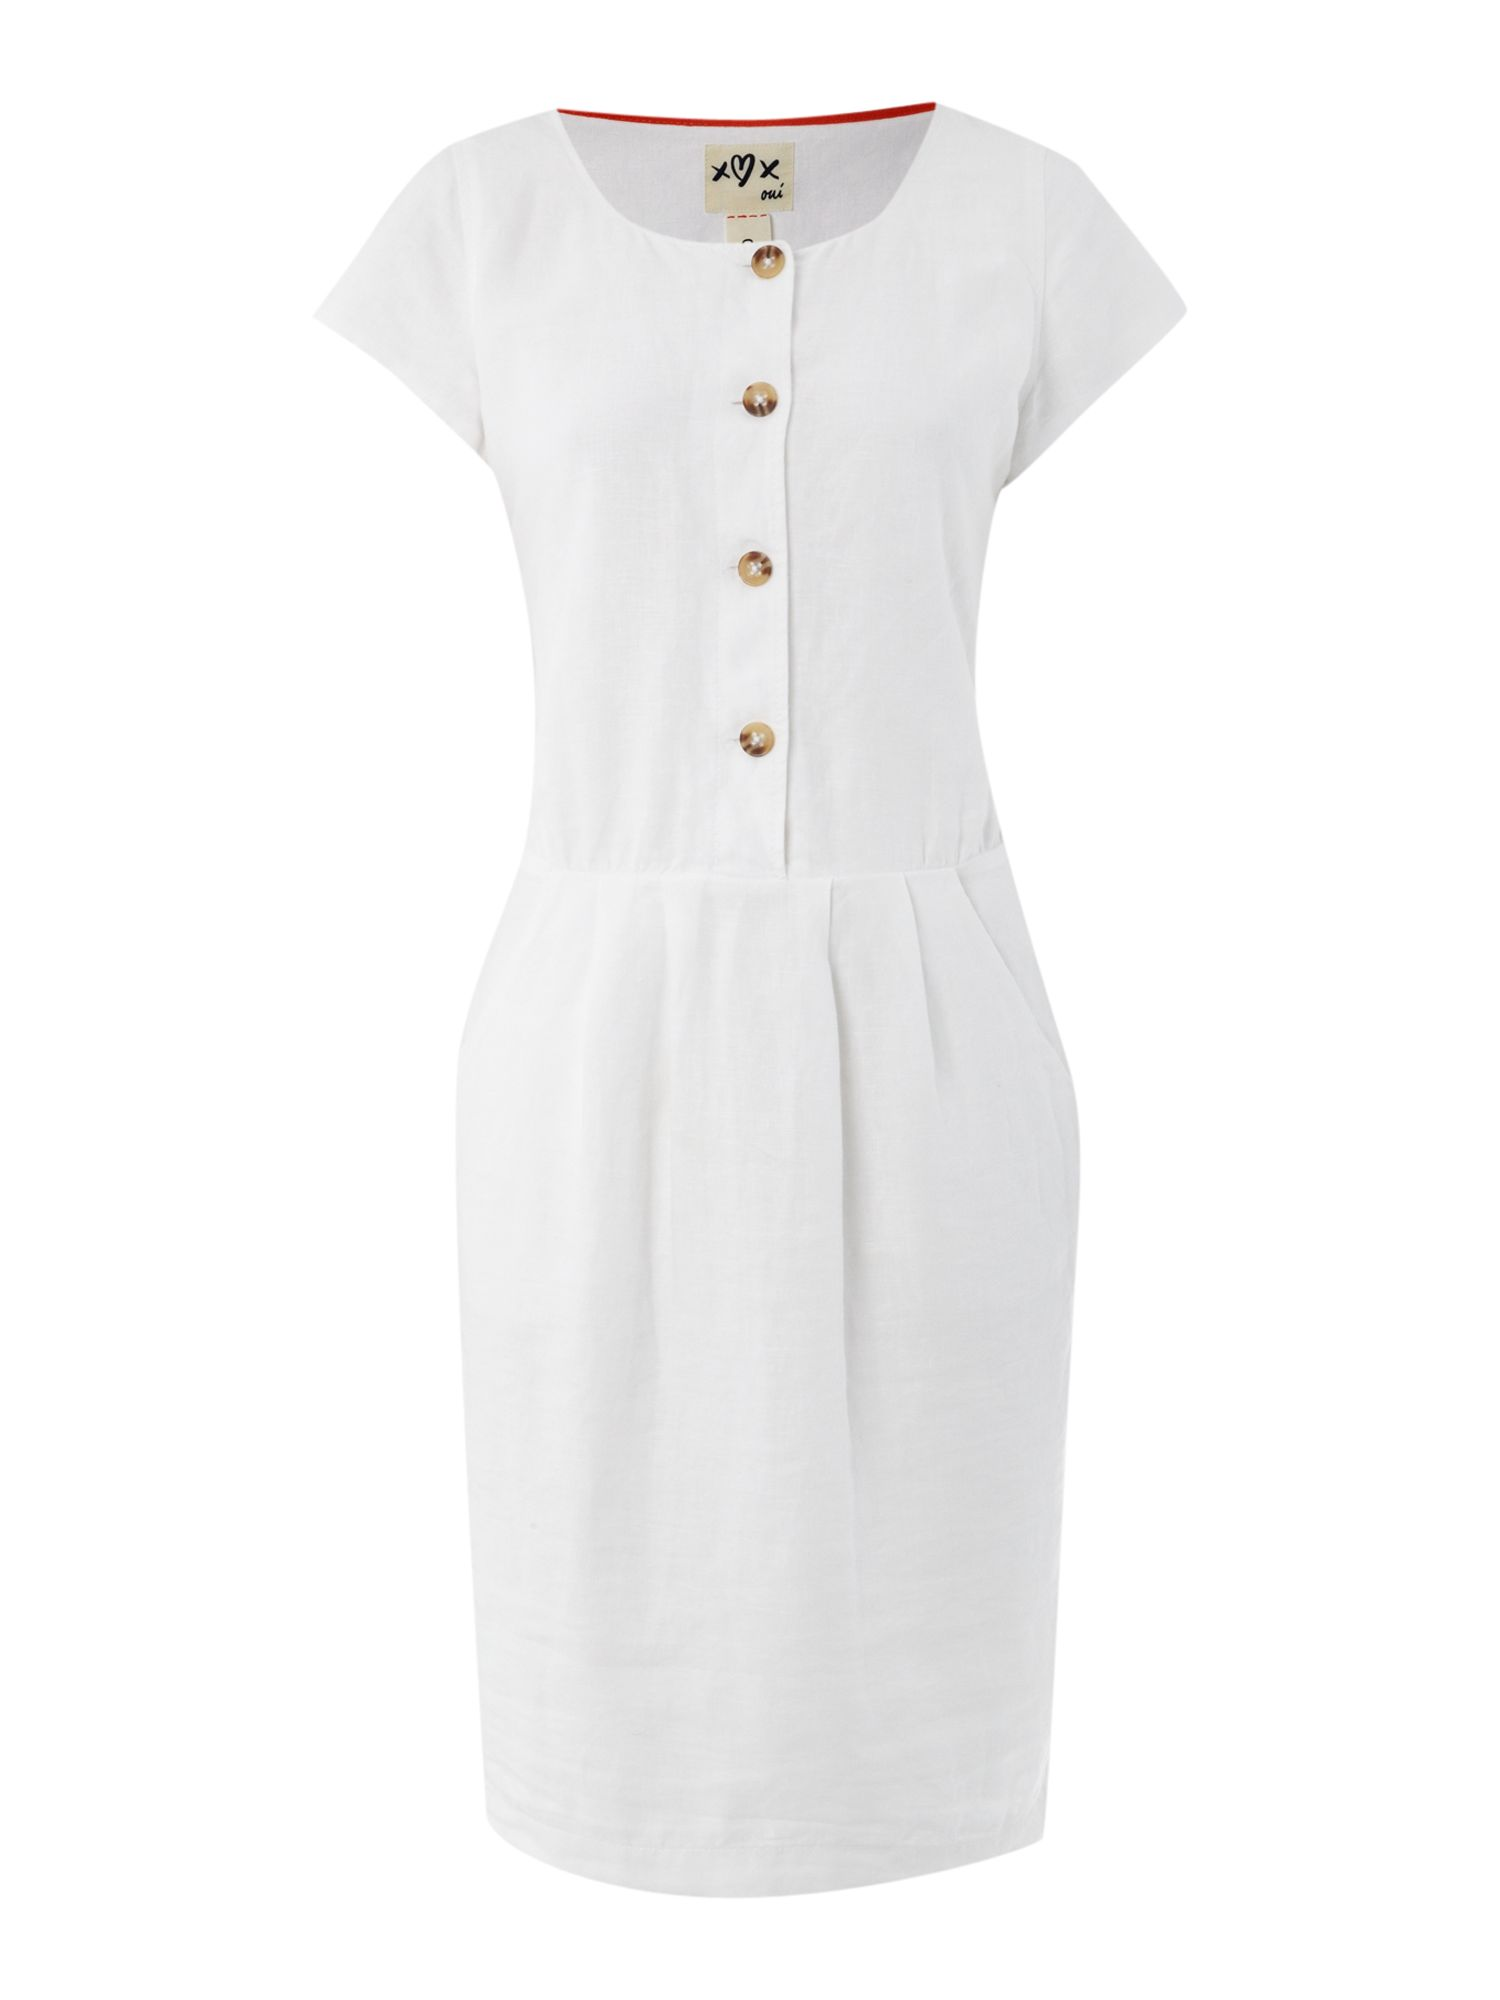 Cap sleeved button front linen dress